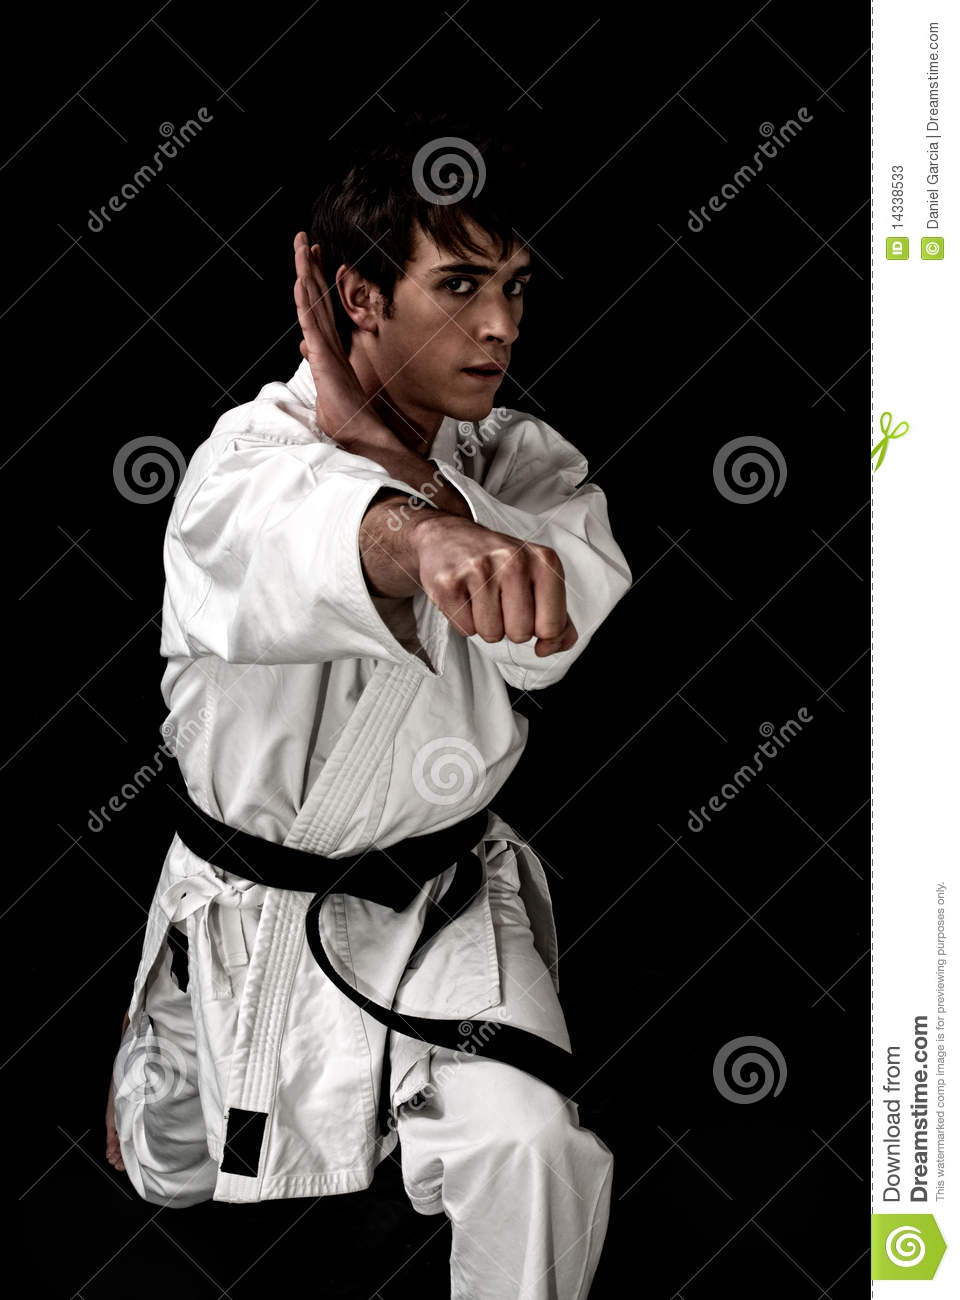 High Contrast karate young male fighter on black